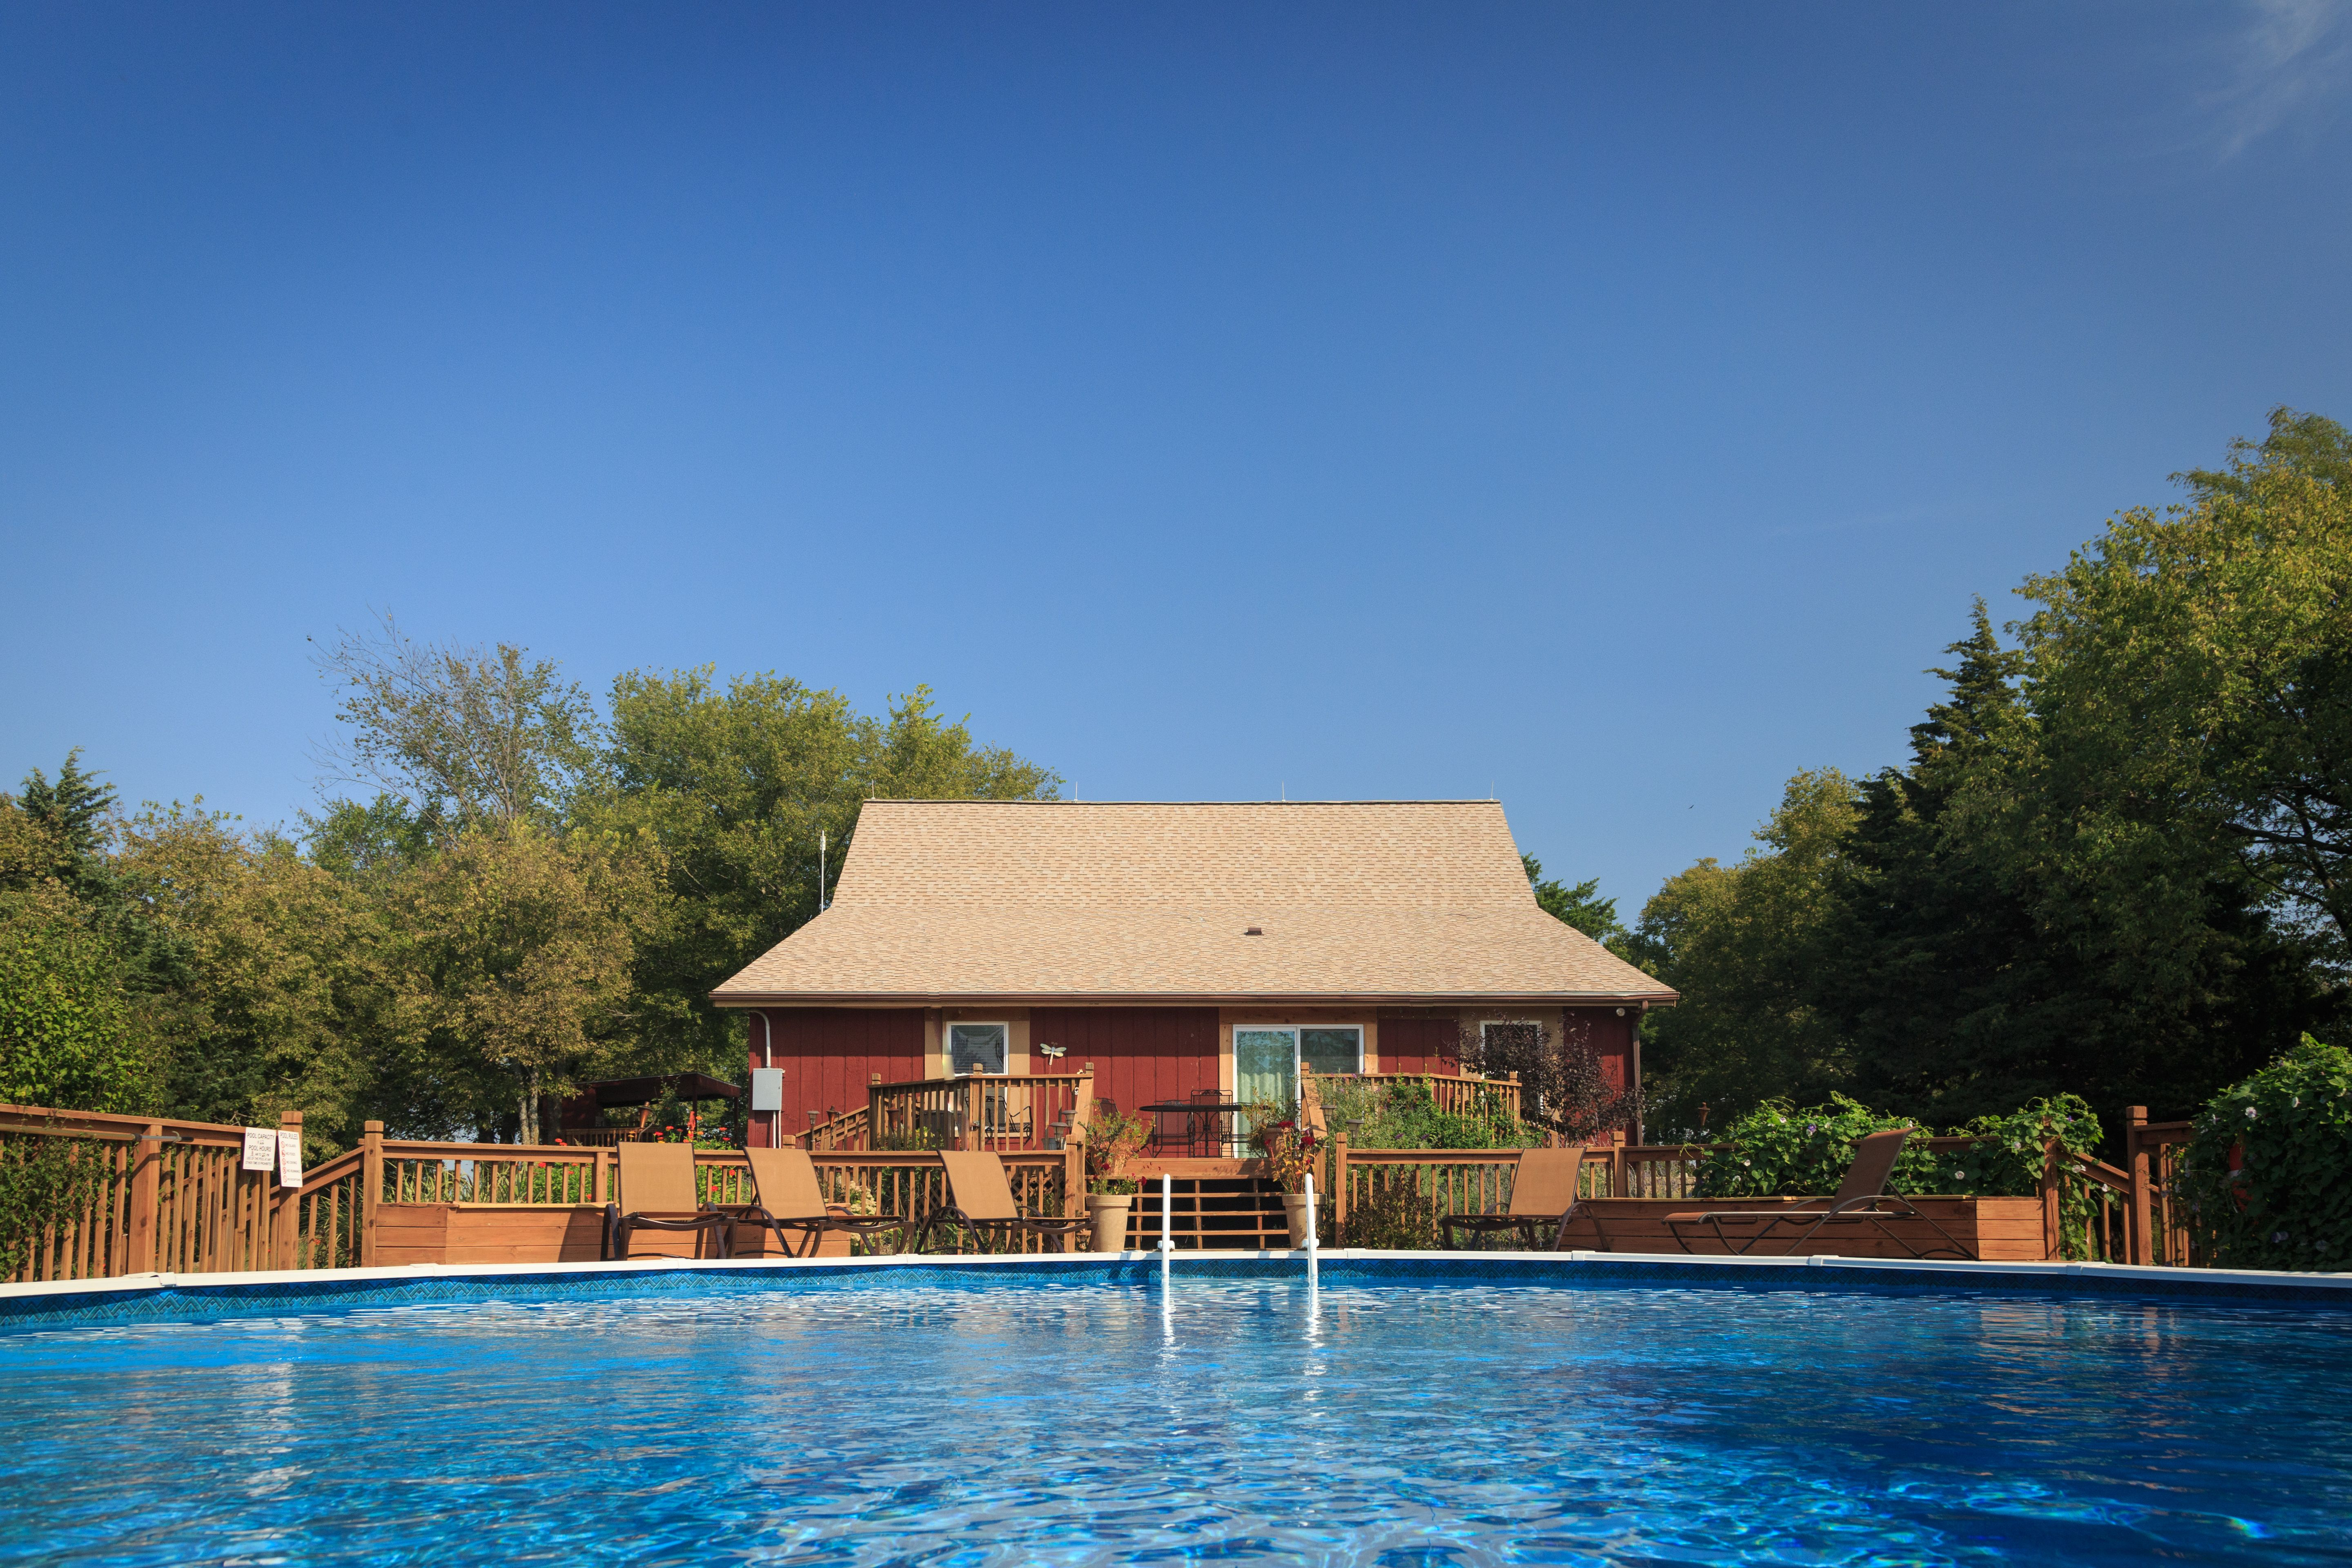 Poolside at Cedar Crest Lodge bed and breakfast in